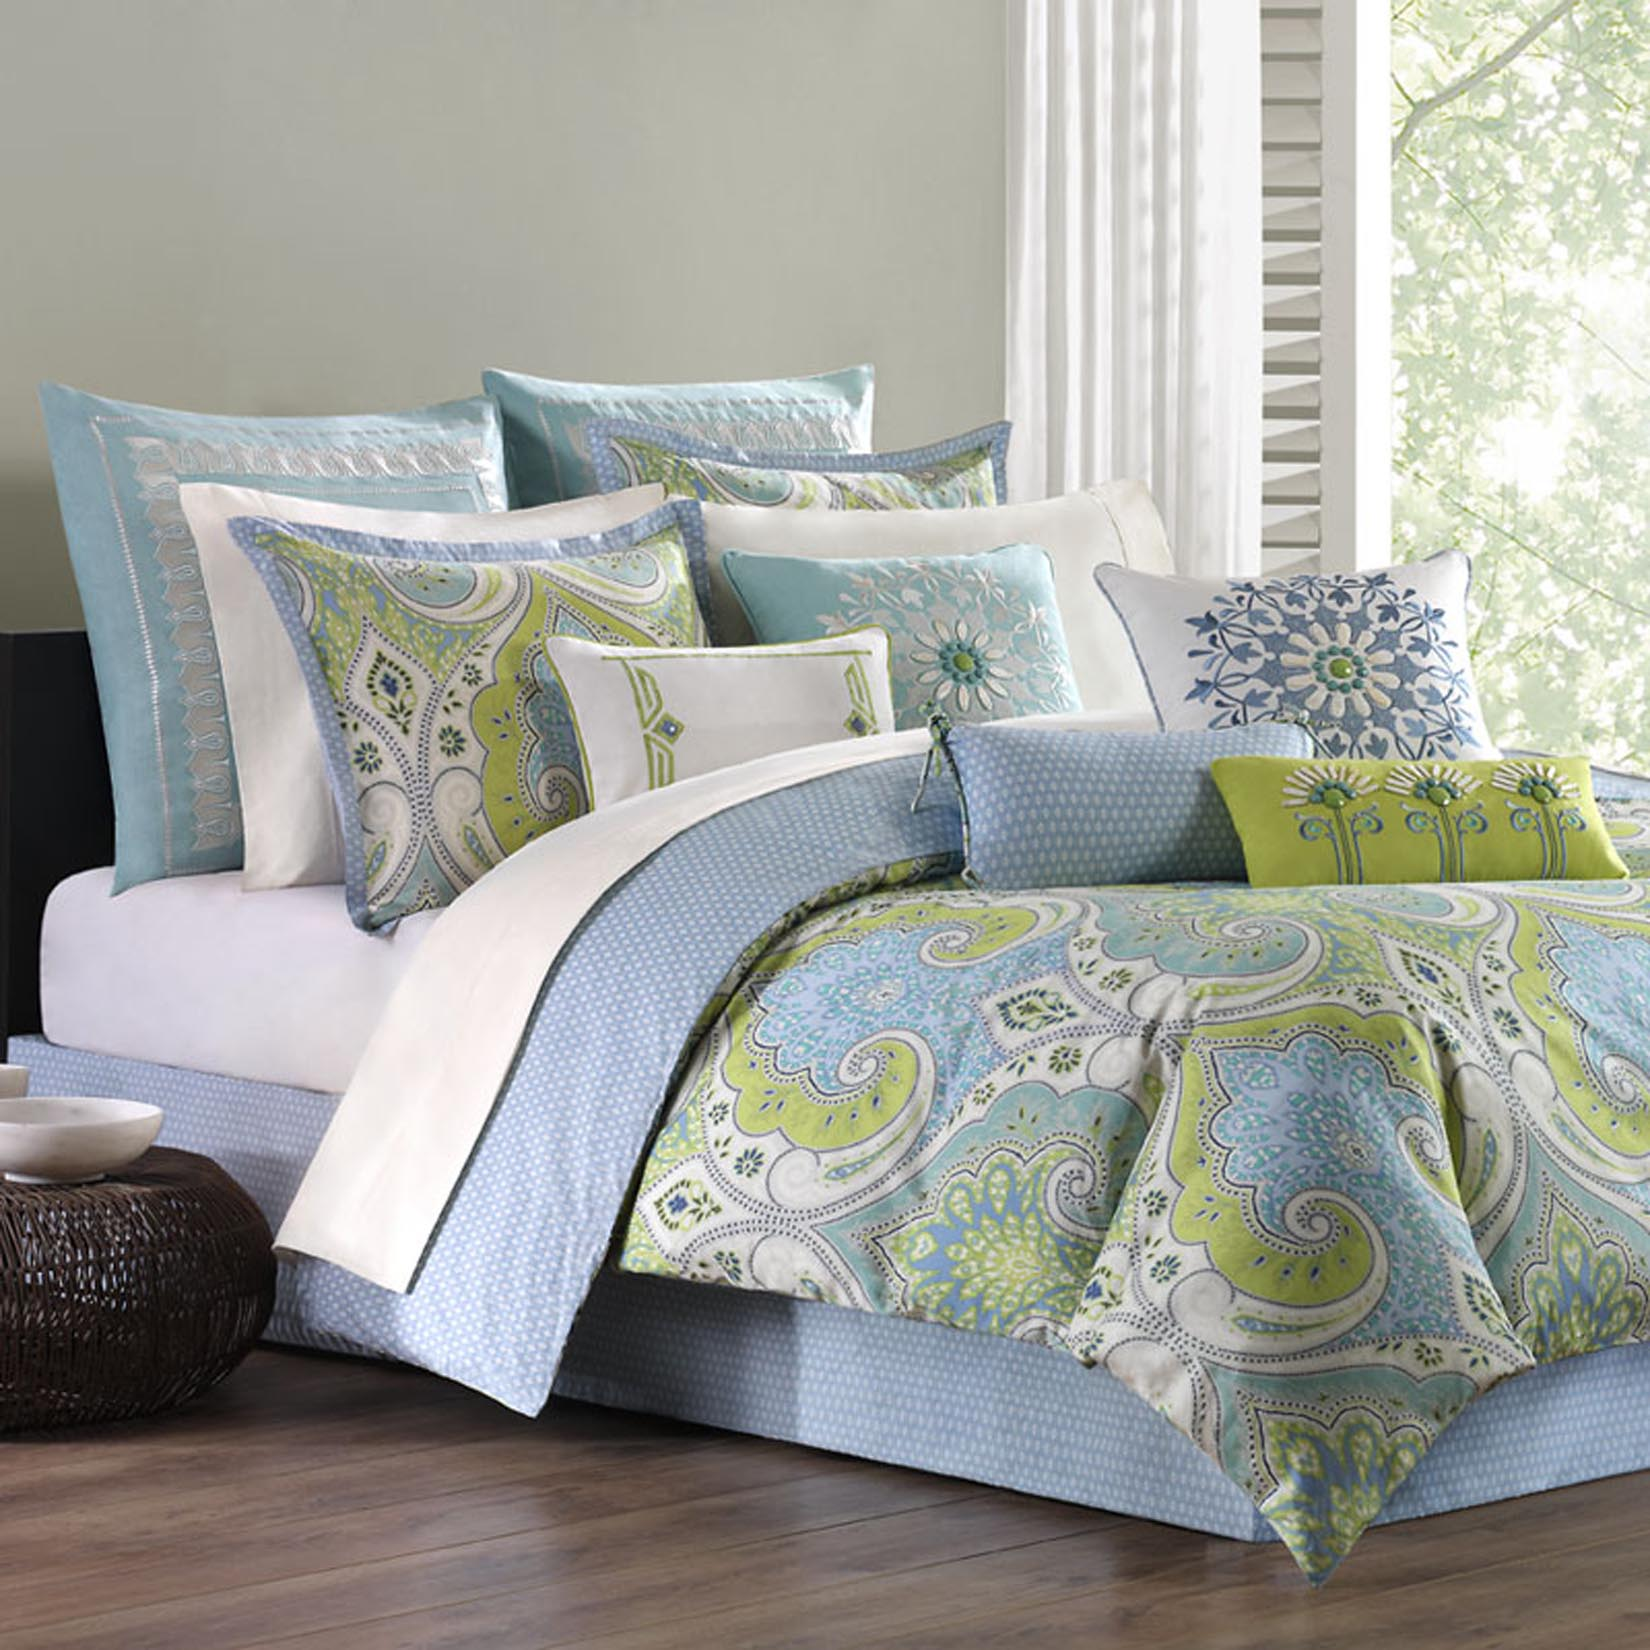 Apple & Sky - Sardinia Comforter Set